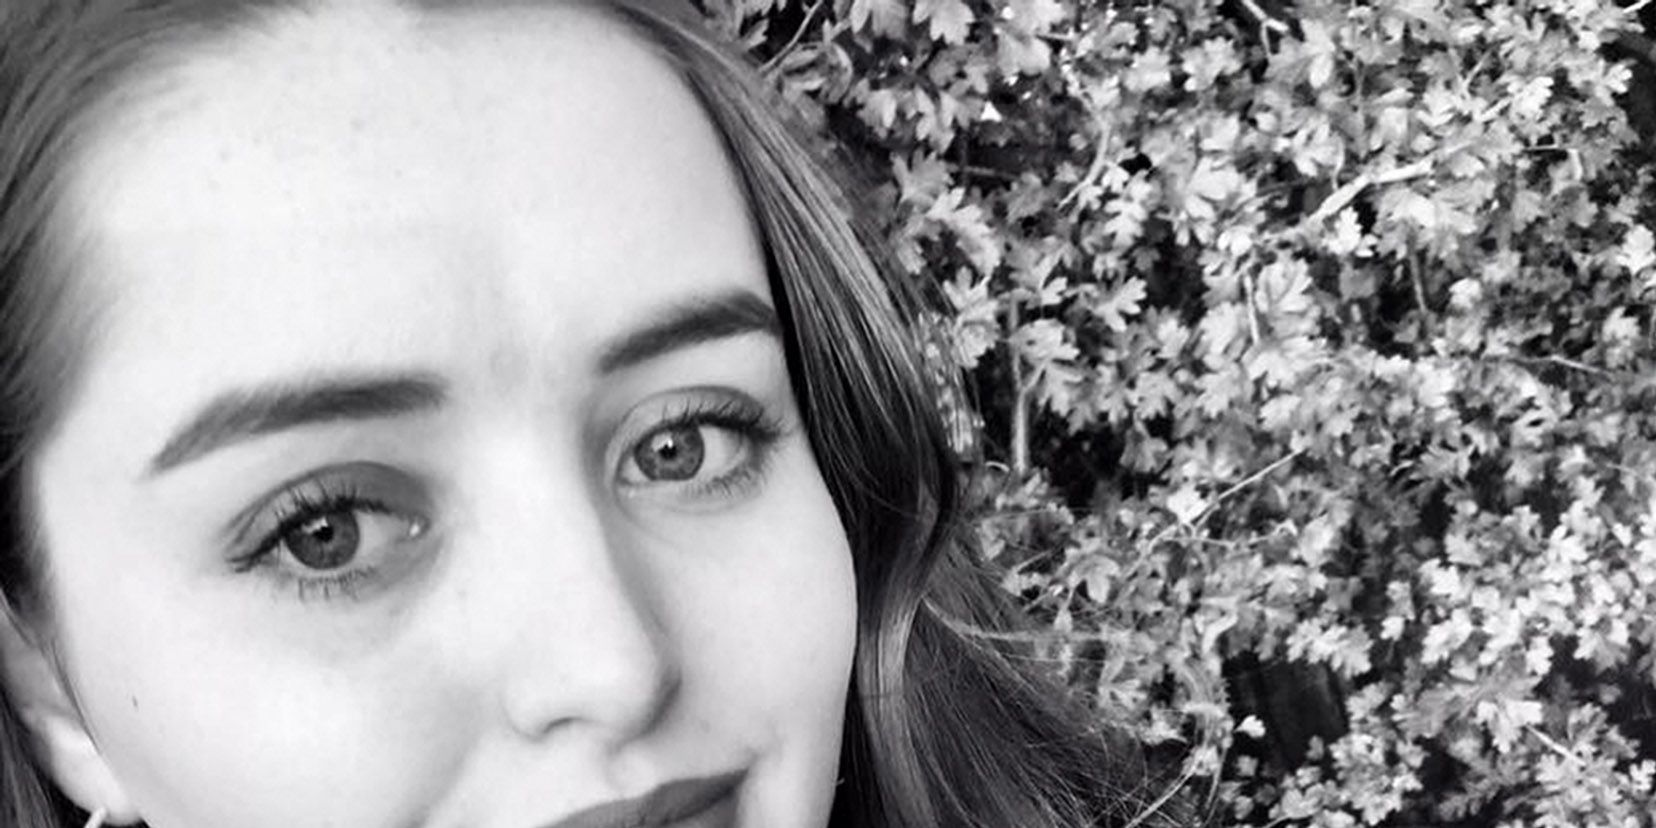 The man accused of killing Grace Millane was due to go on a date with another woman that night